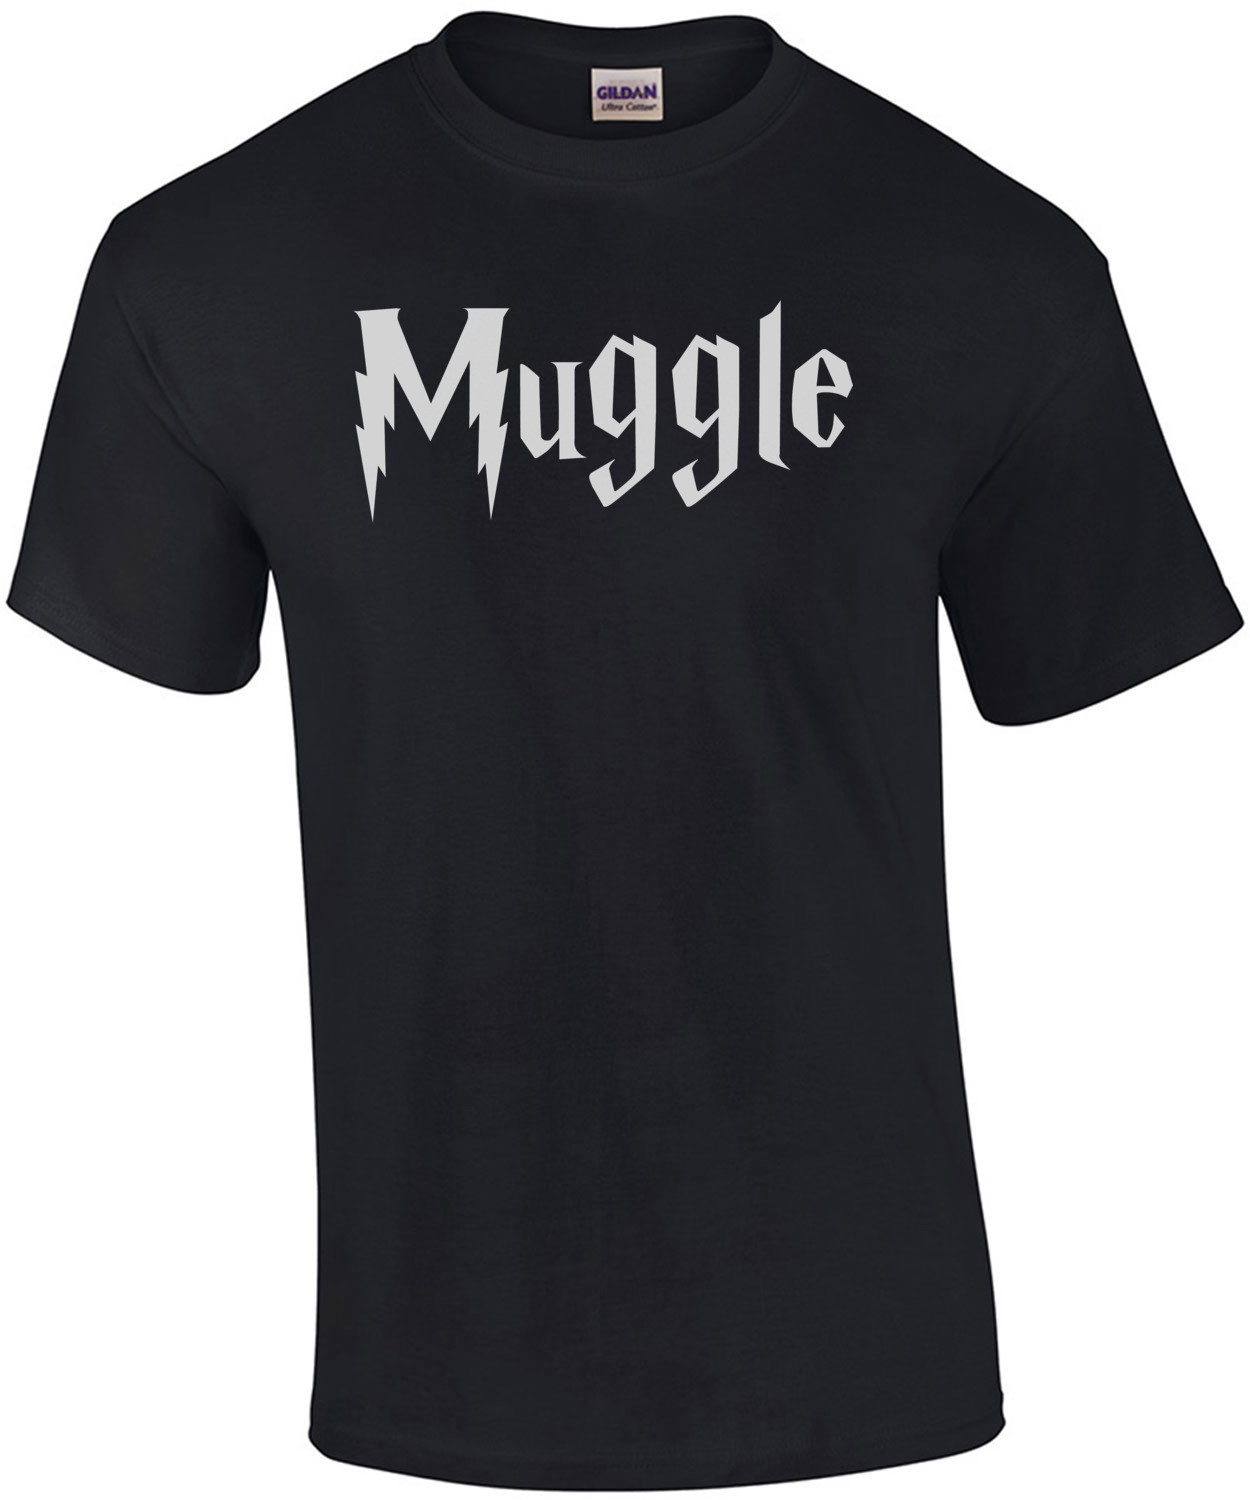 Muggle - Harry Potter T-shirt